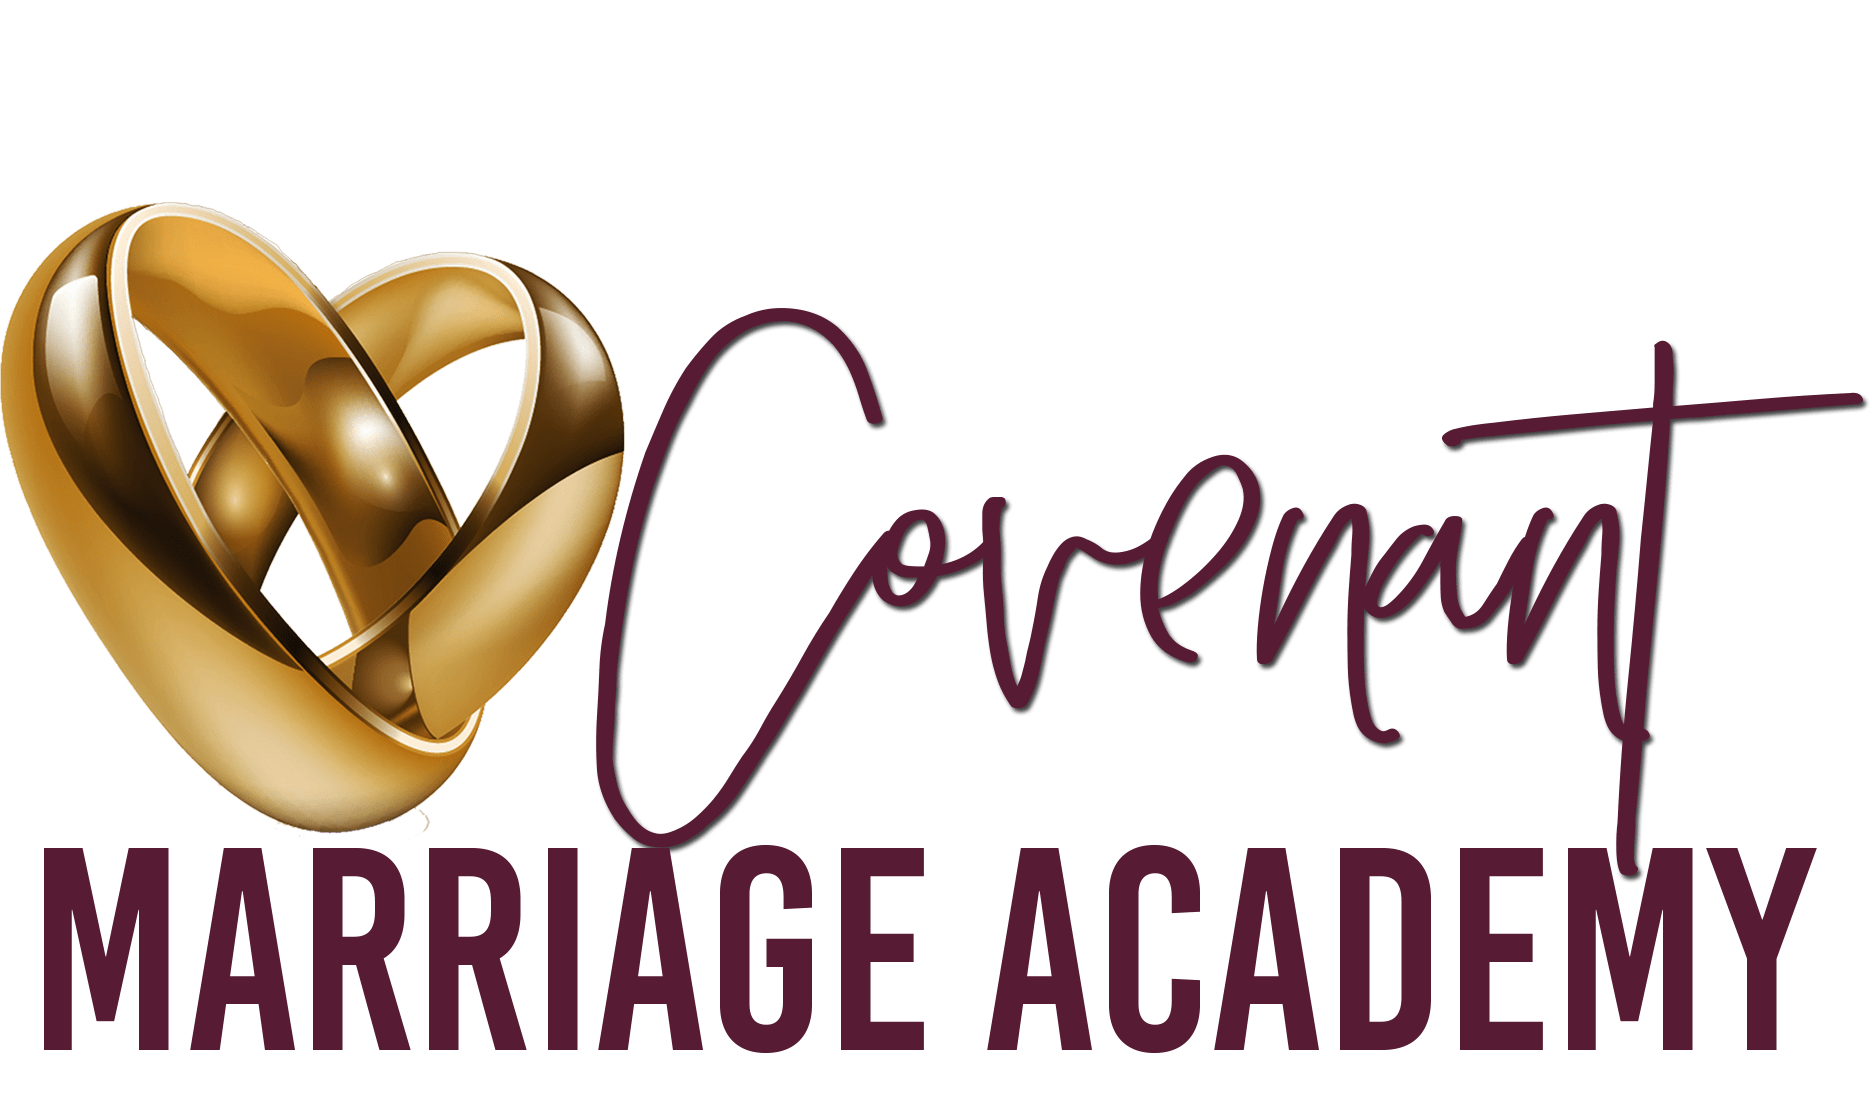 Covenant Marriage Academy